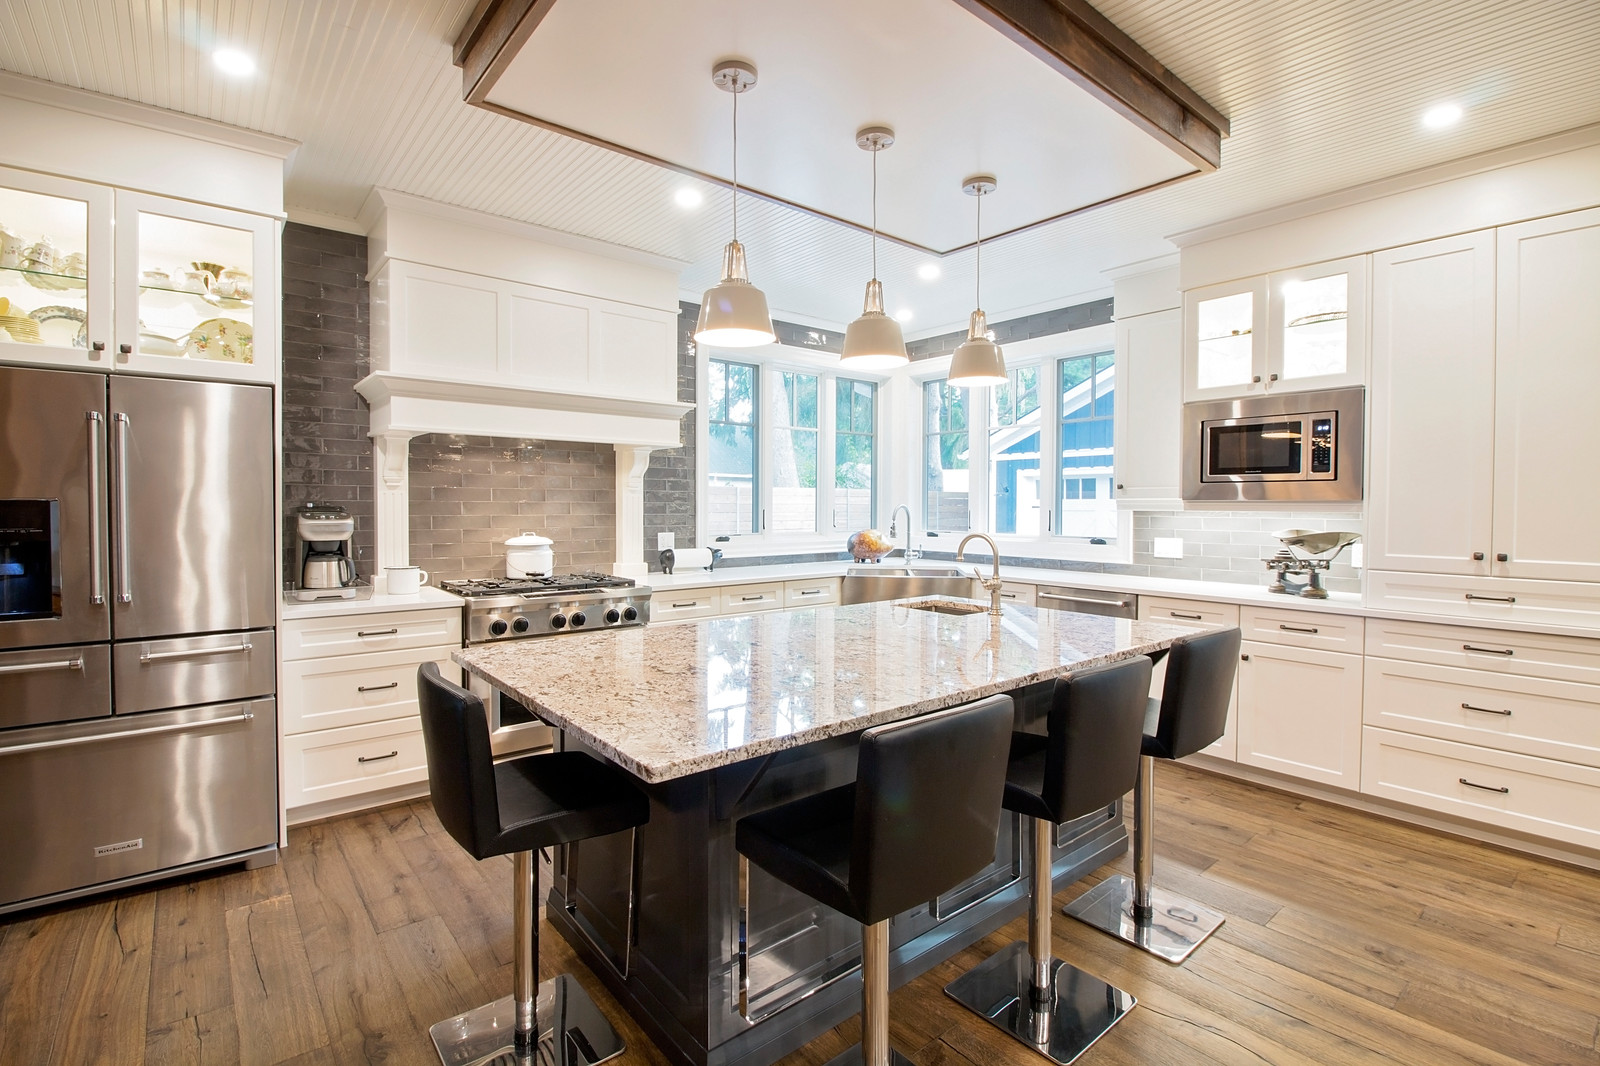 custom kitchens beige kitchen cabinets cabinetry niagara ontario timberwood inc they have tons of options to choose from and worked closely with me give my dream